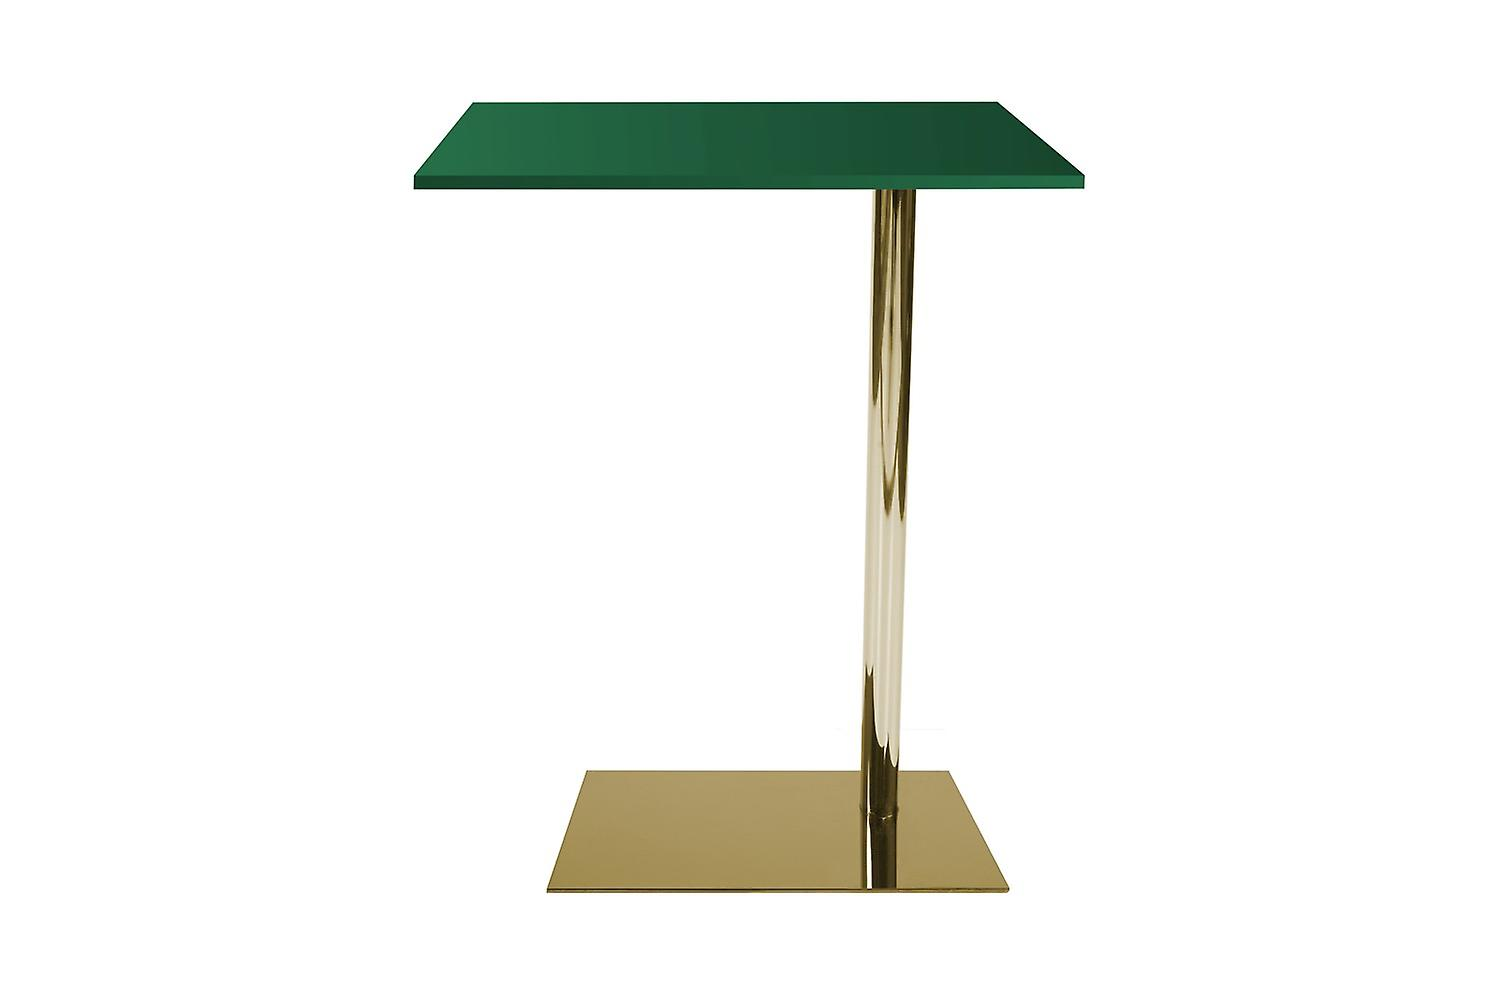 Tables Basse Luxe Rectangulaire Vert Table Or 6fbg7yY